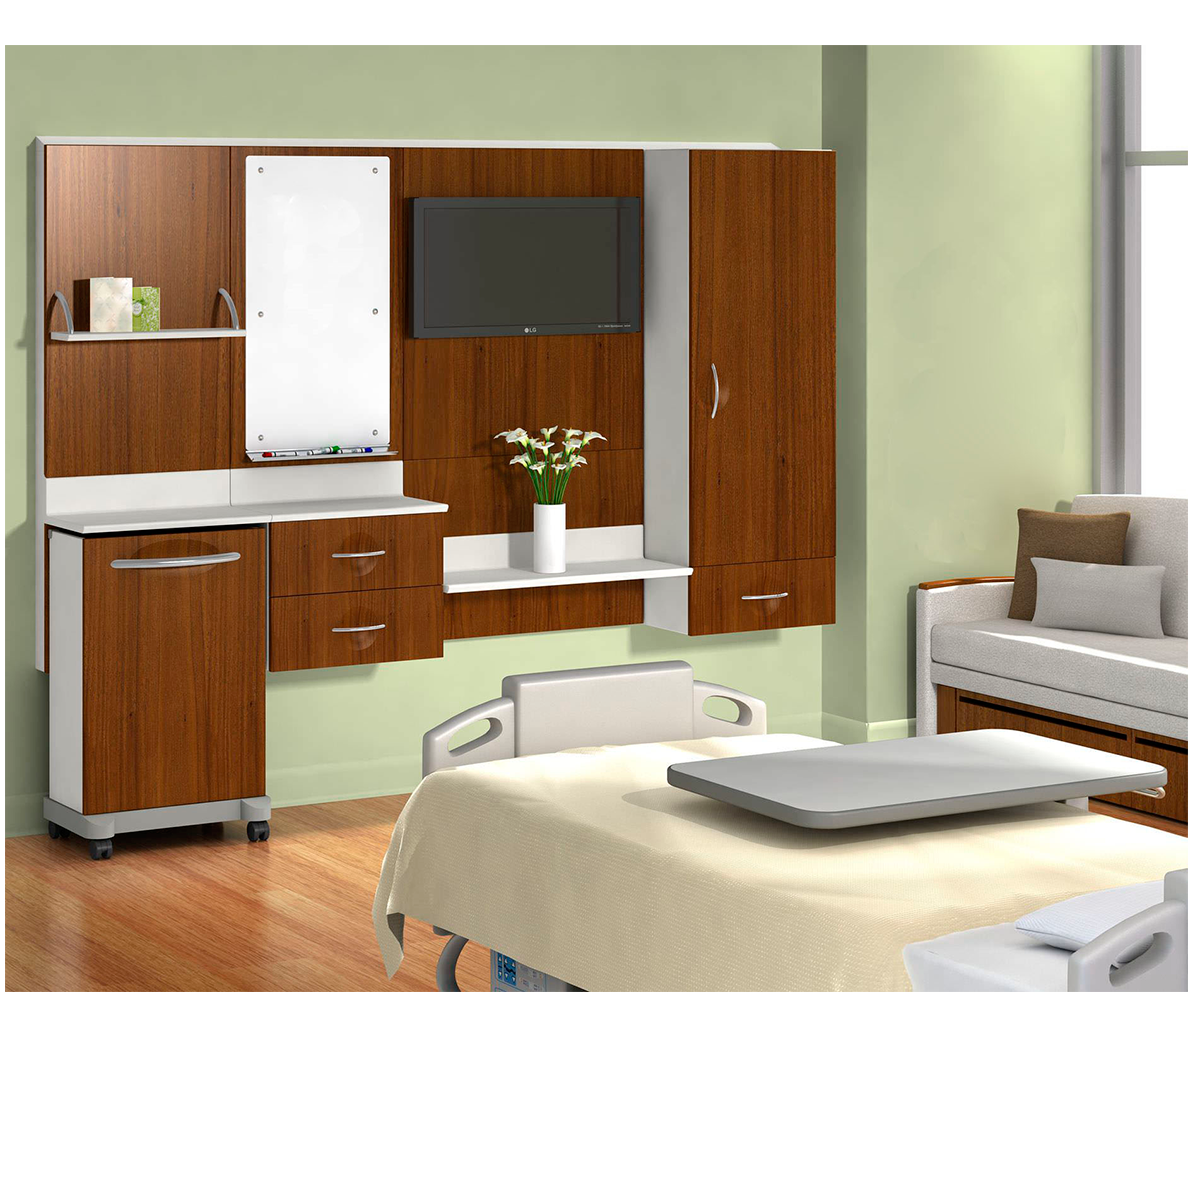 Patient room cabinets